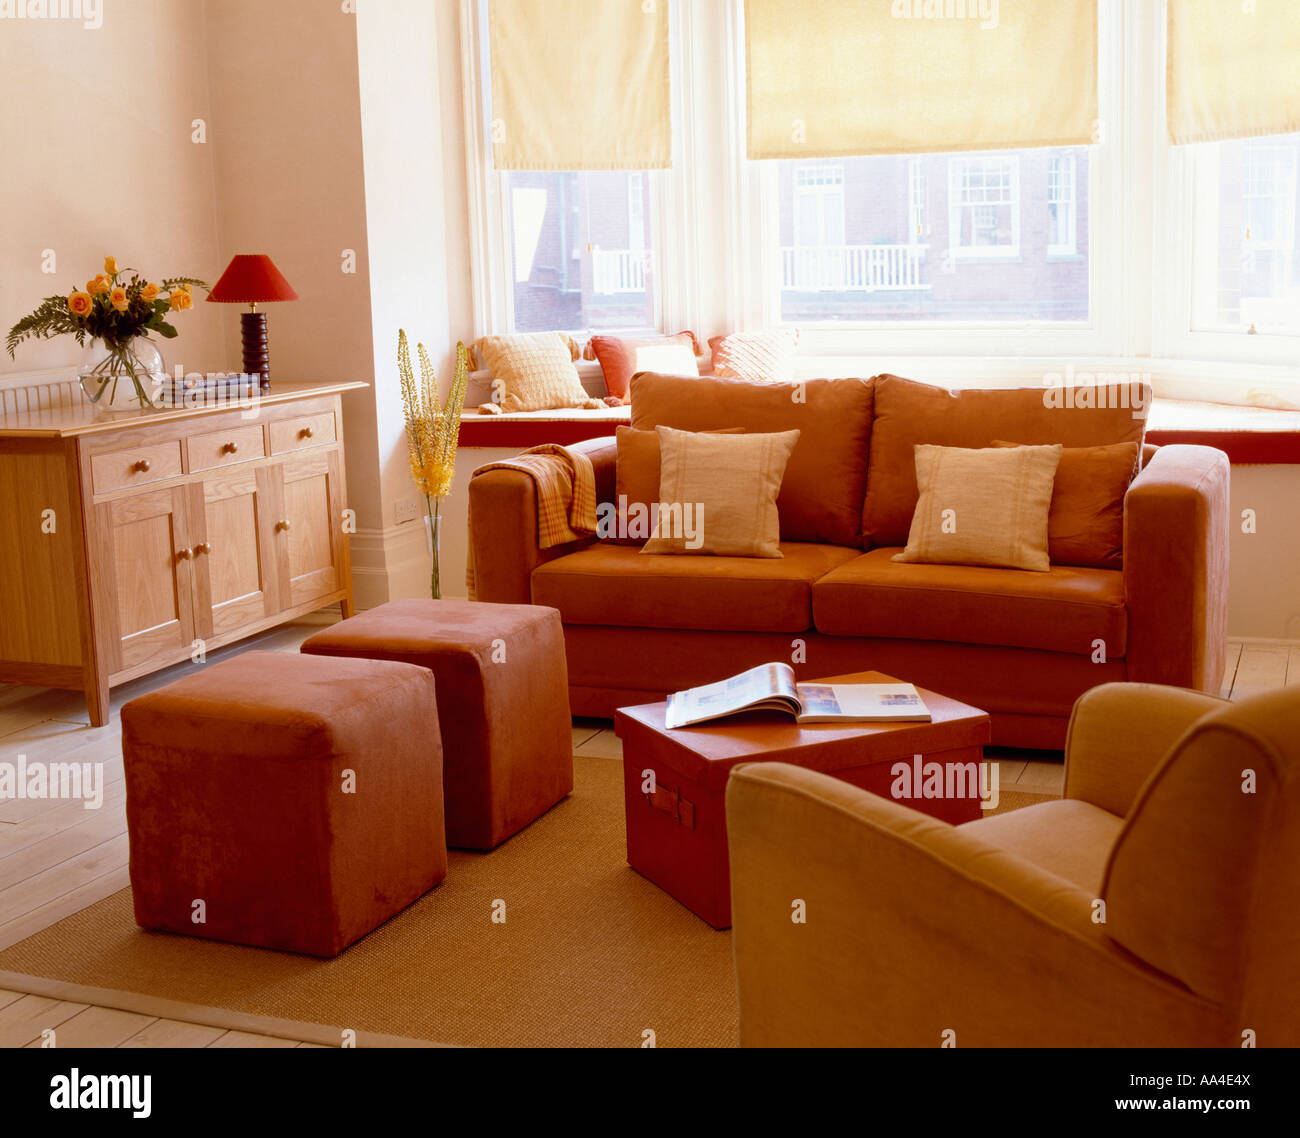 Modern Livingroom With Terracotta Sofa And Upholstered Stools And Stock Photo Royalty Free